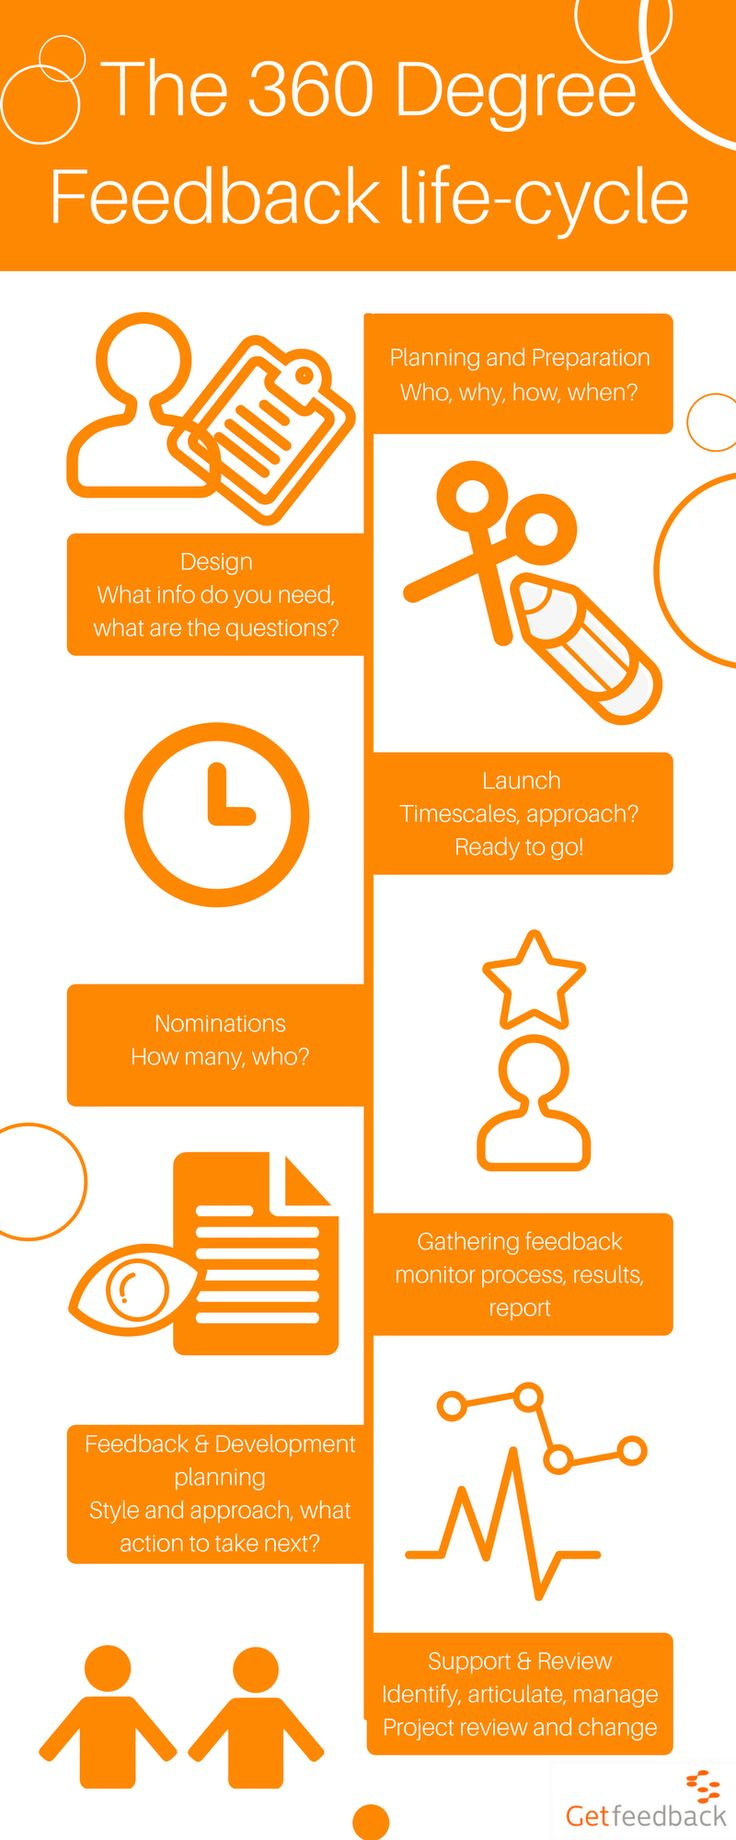 What does a 360 degree feedback life cycle look like?